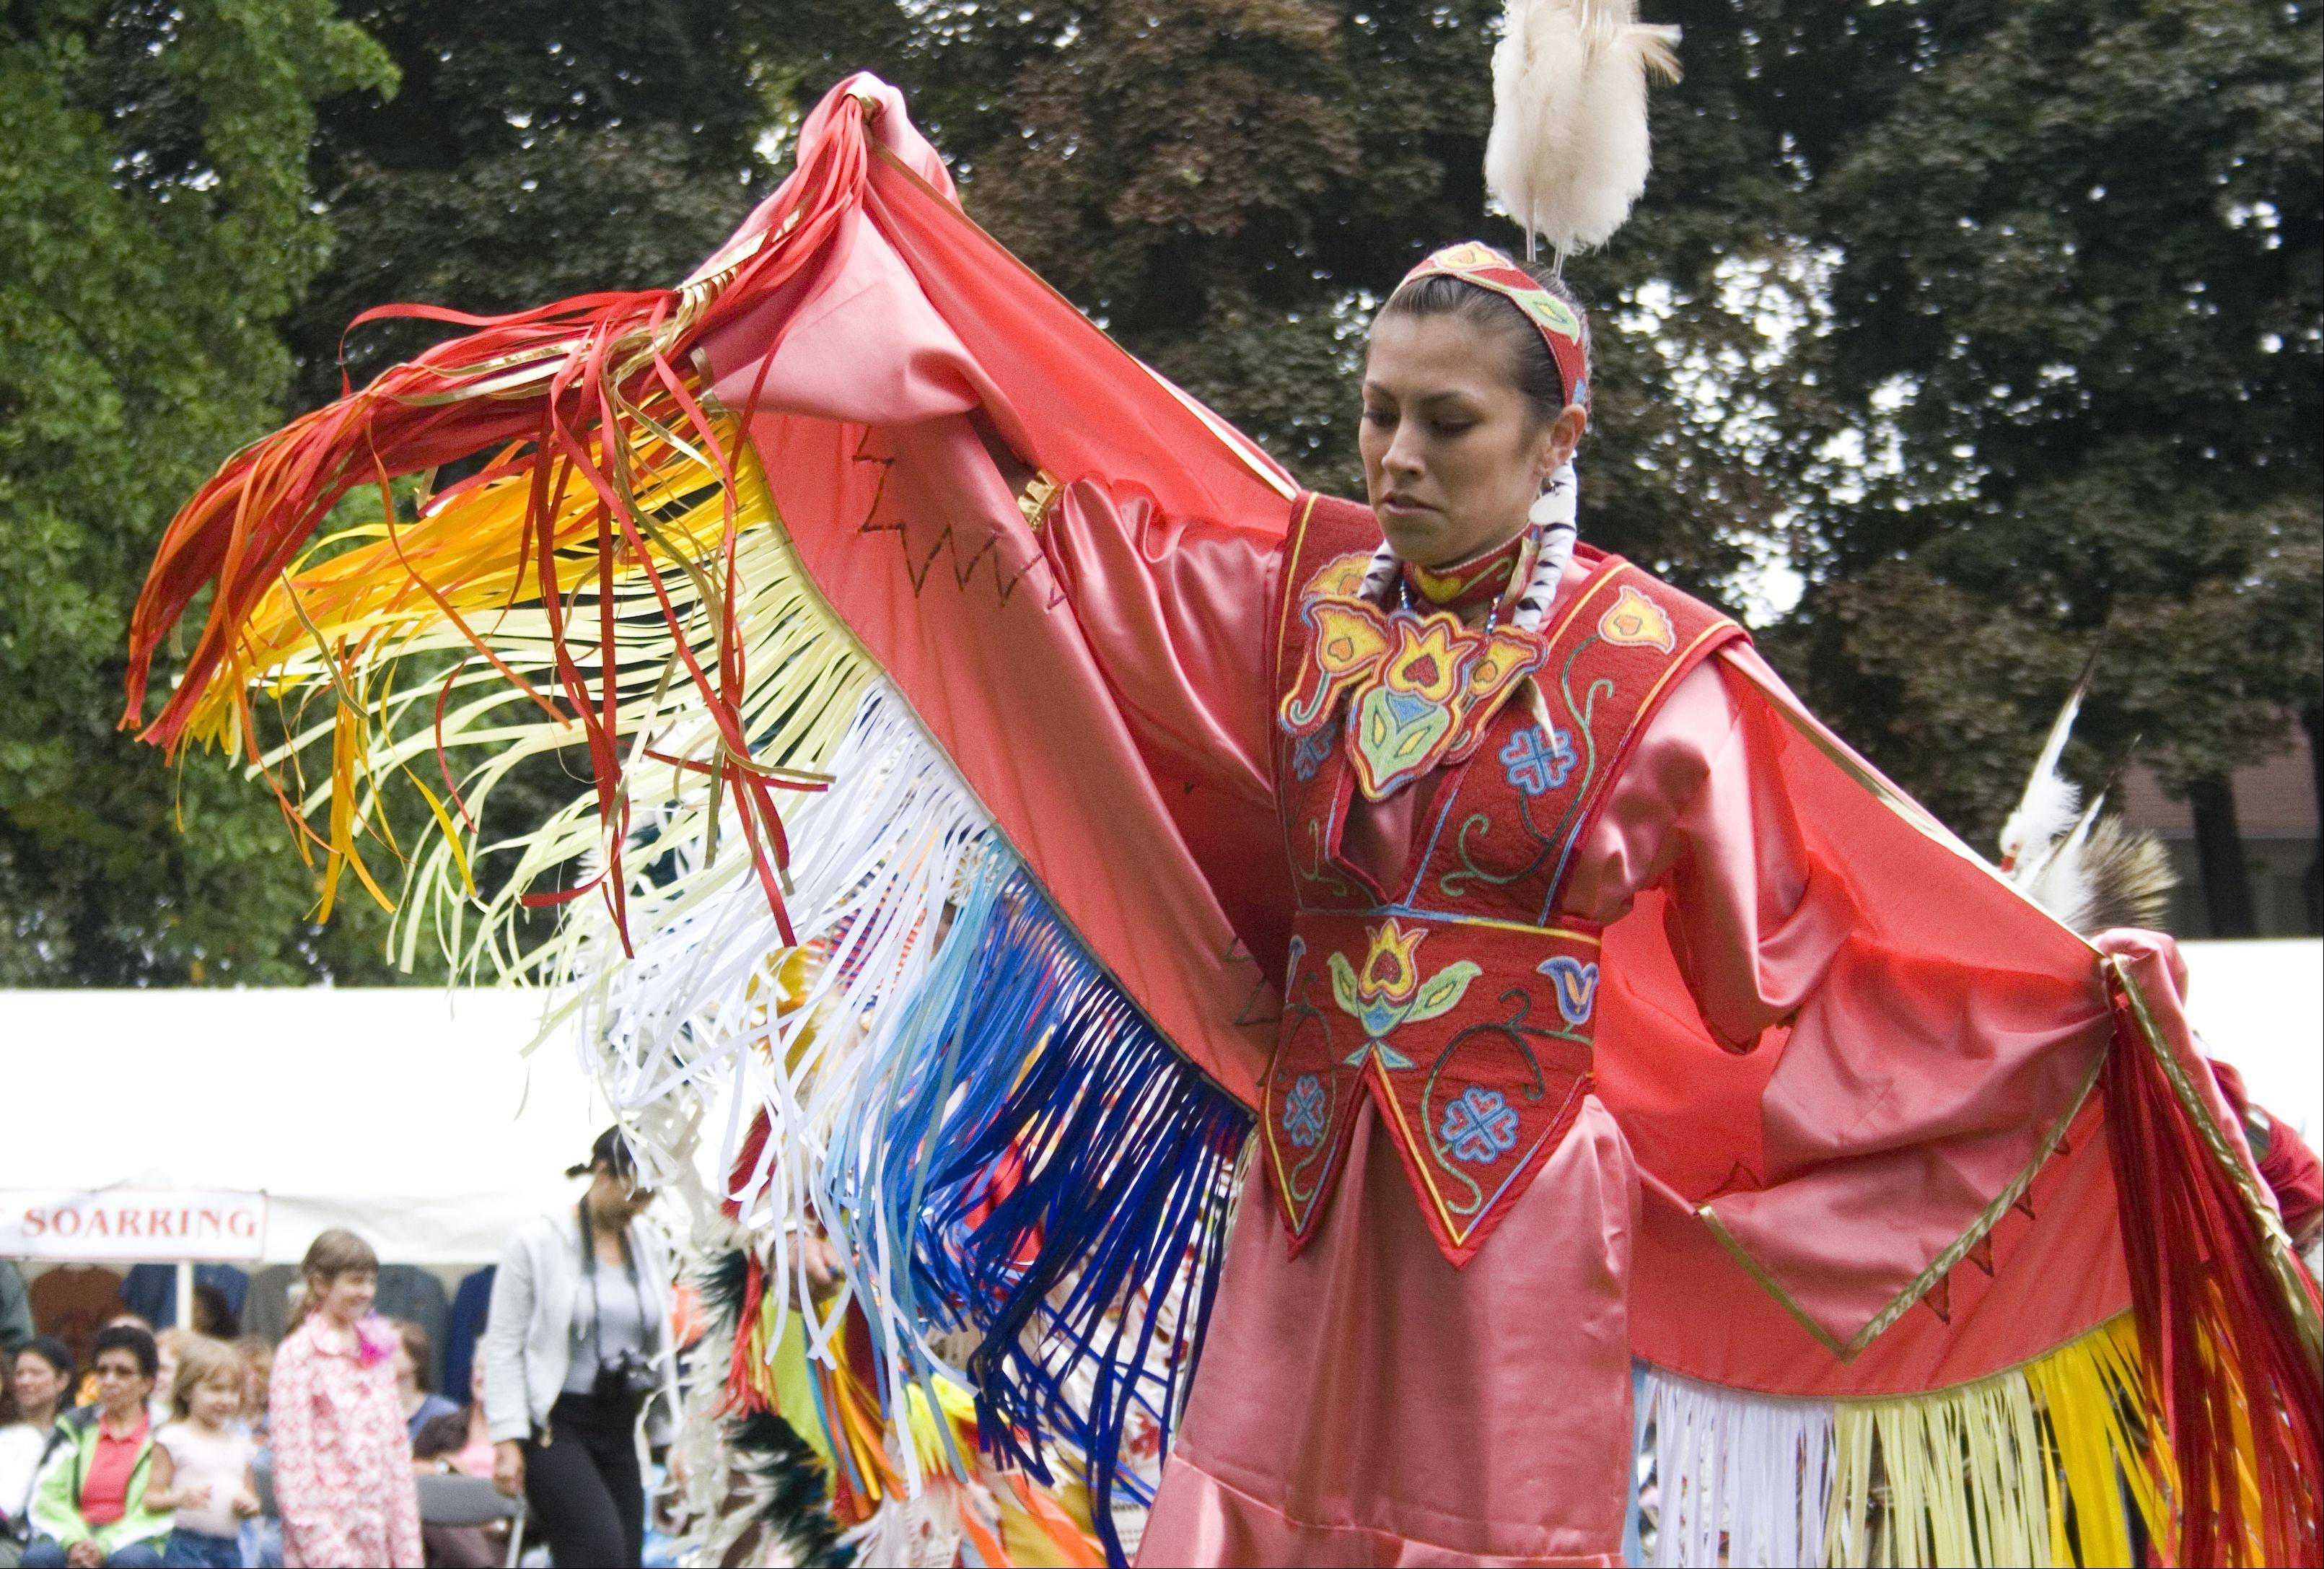 The Grand Entry is a highlight of the annual Harvest Pow Wow returning Saturday and Sunday, Sept. 21 and 22, to Naper Settlement, and it takes place three times over the weekend. About 100 dancers proceed in during the traditional ceremony, which opens the formal program of the pow wow.